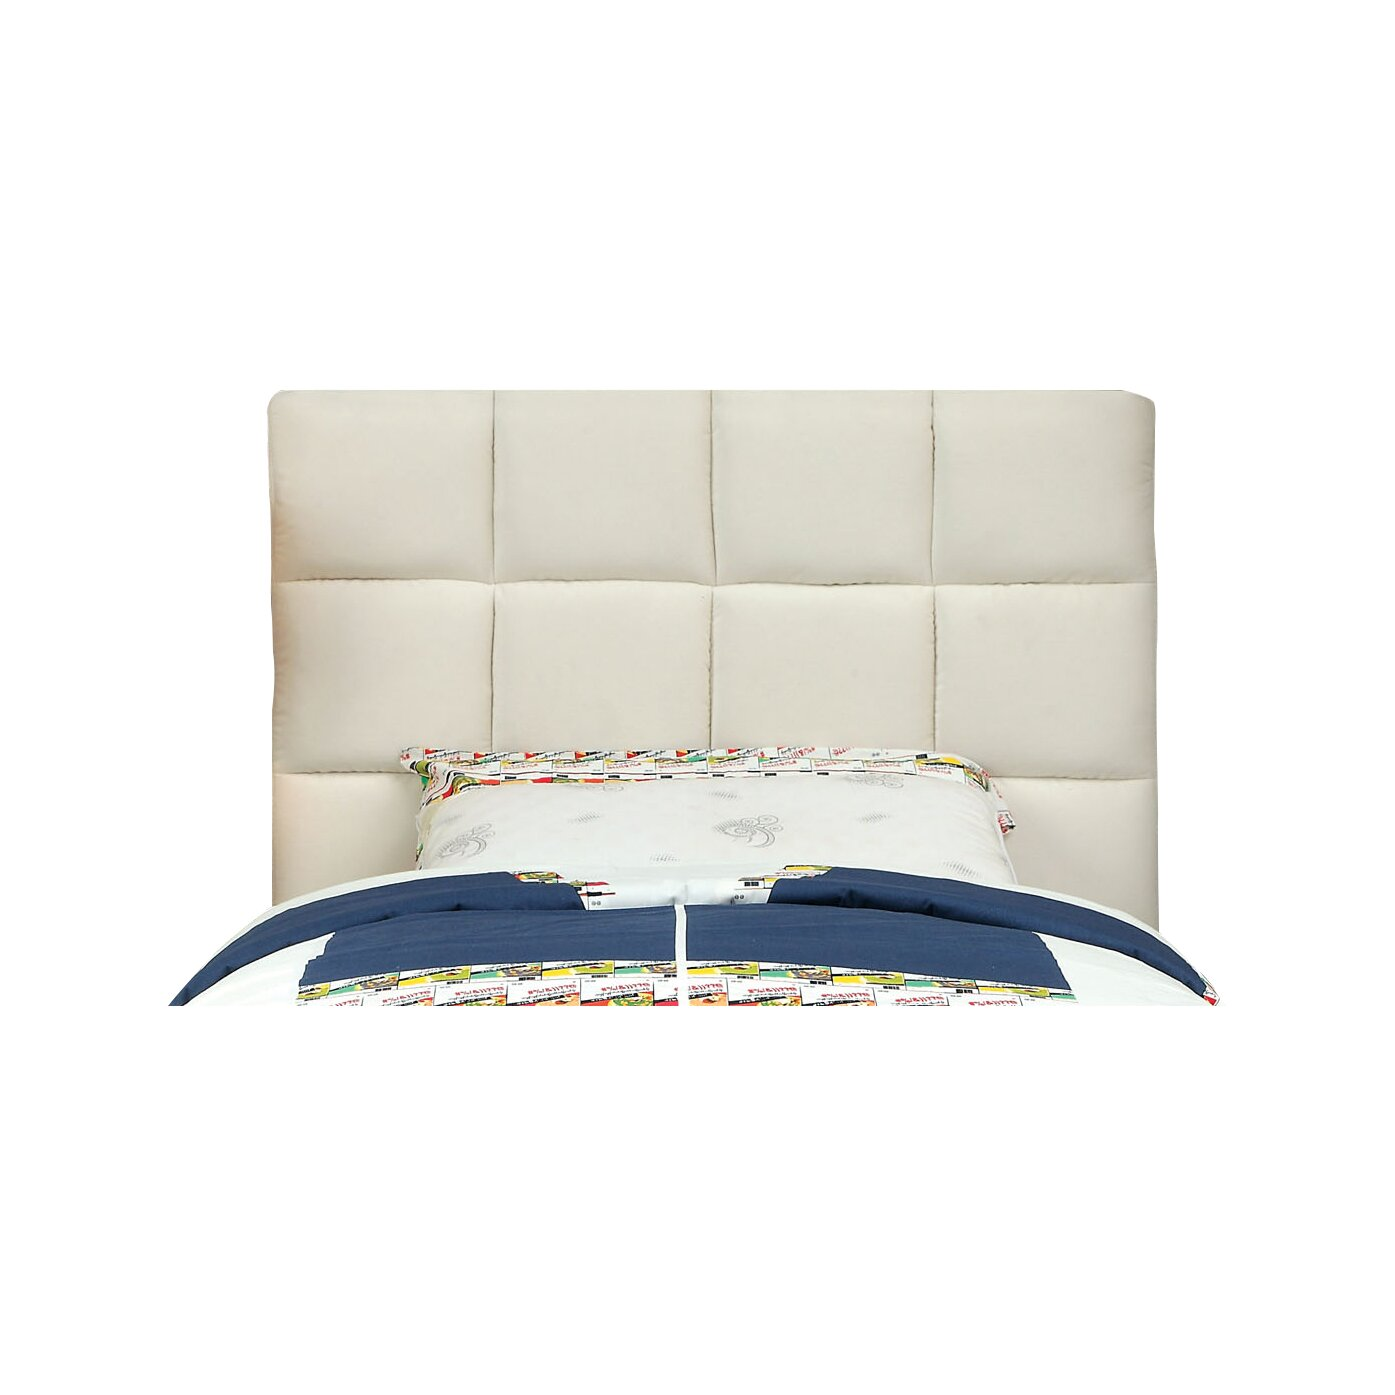 Hokku Designs Choco Upholstered Headboard Reviews Wayfair